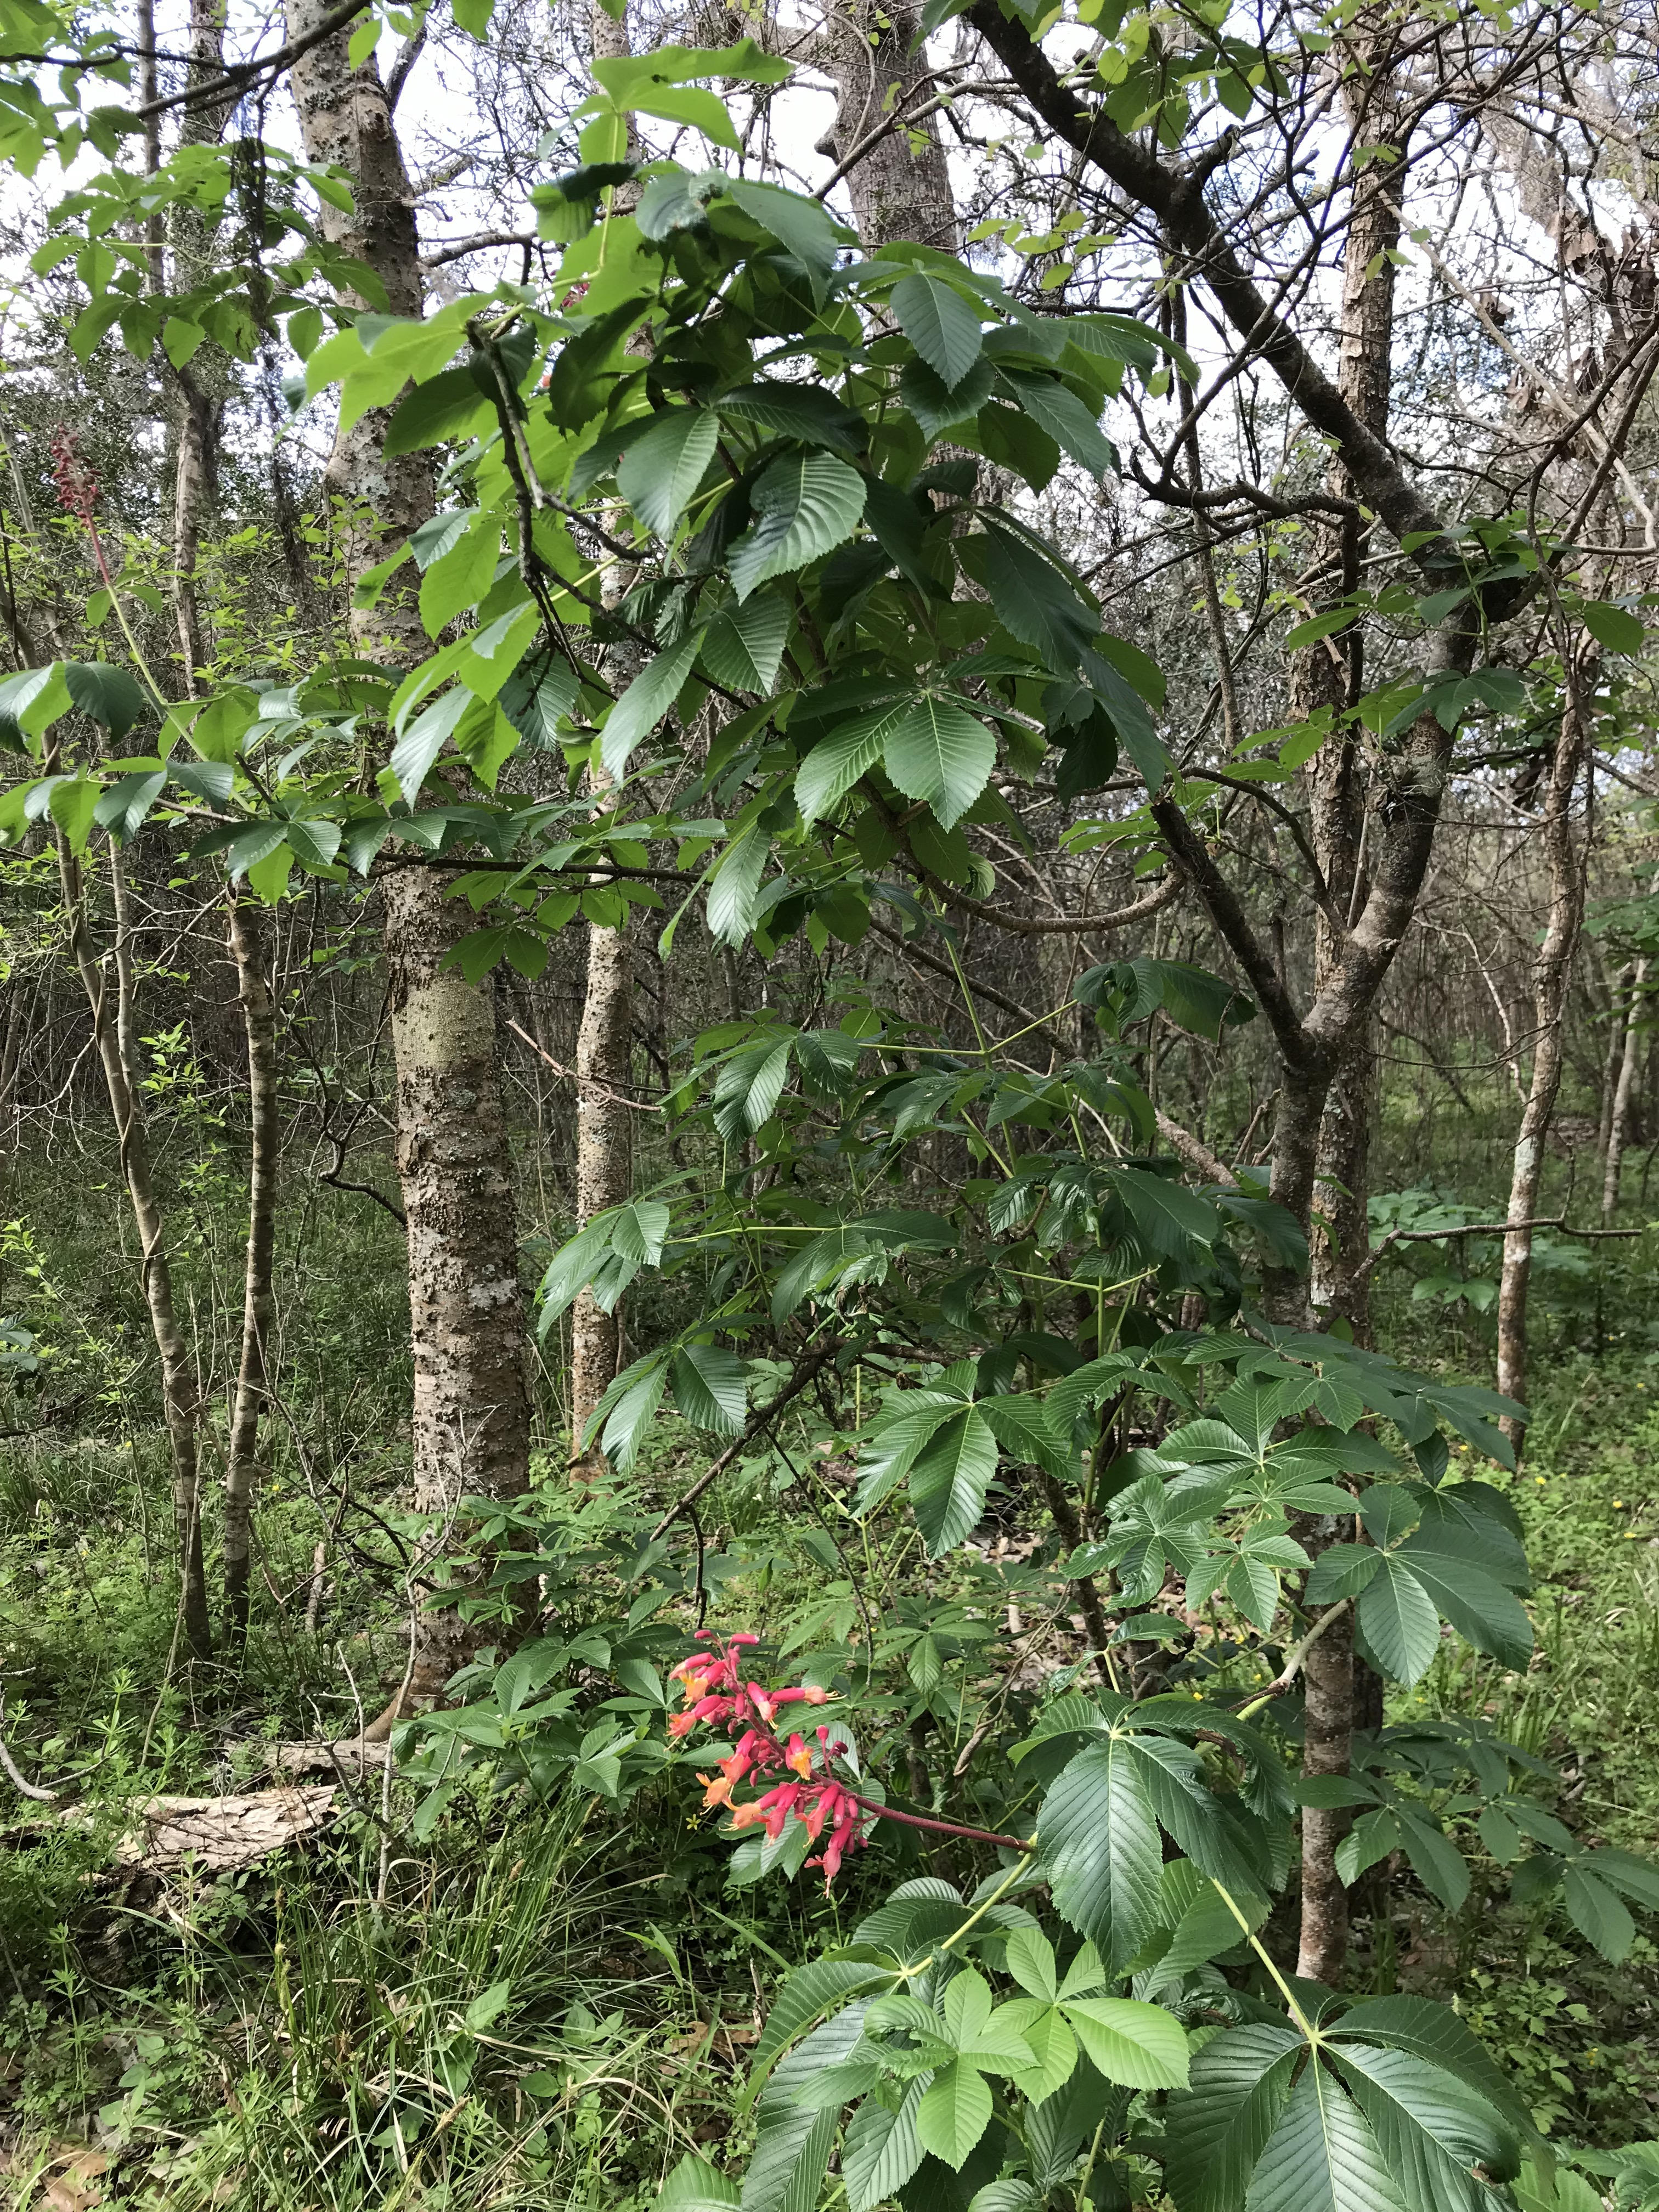 5 Pioneers Found Medicinal Value In The Red Buckeye